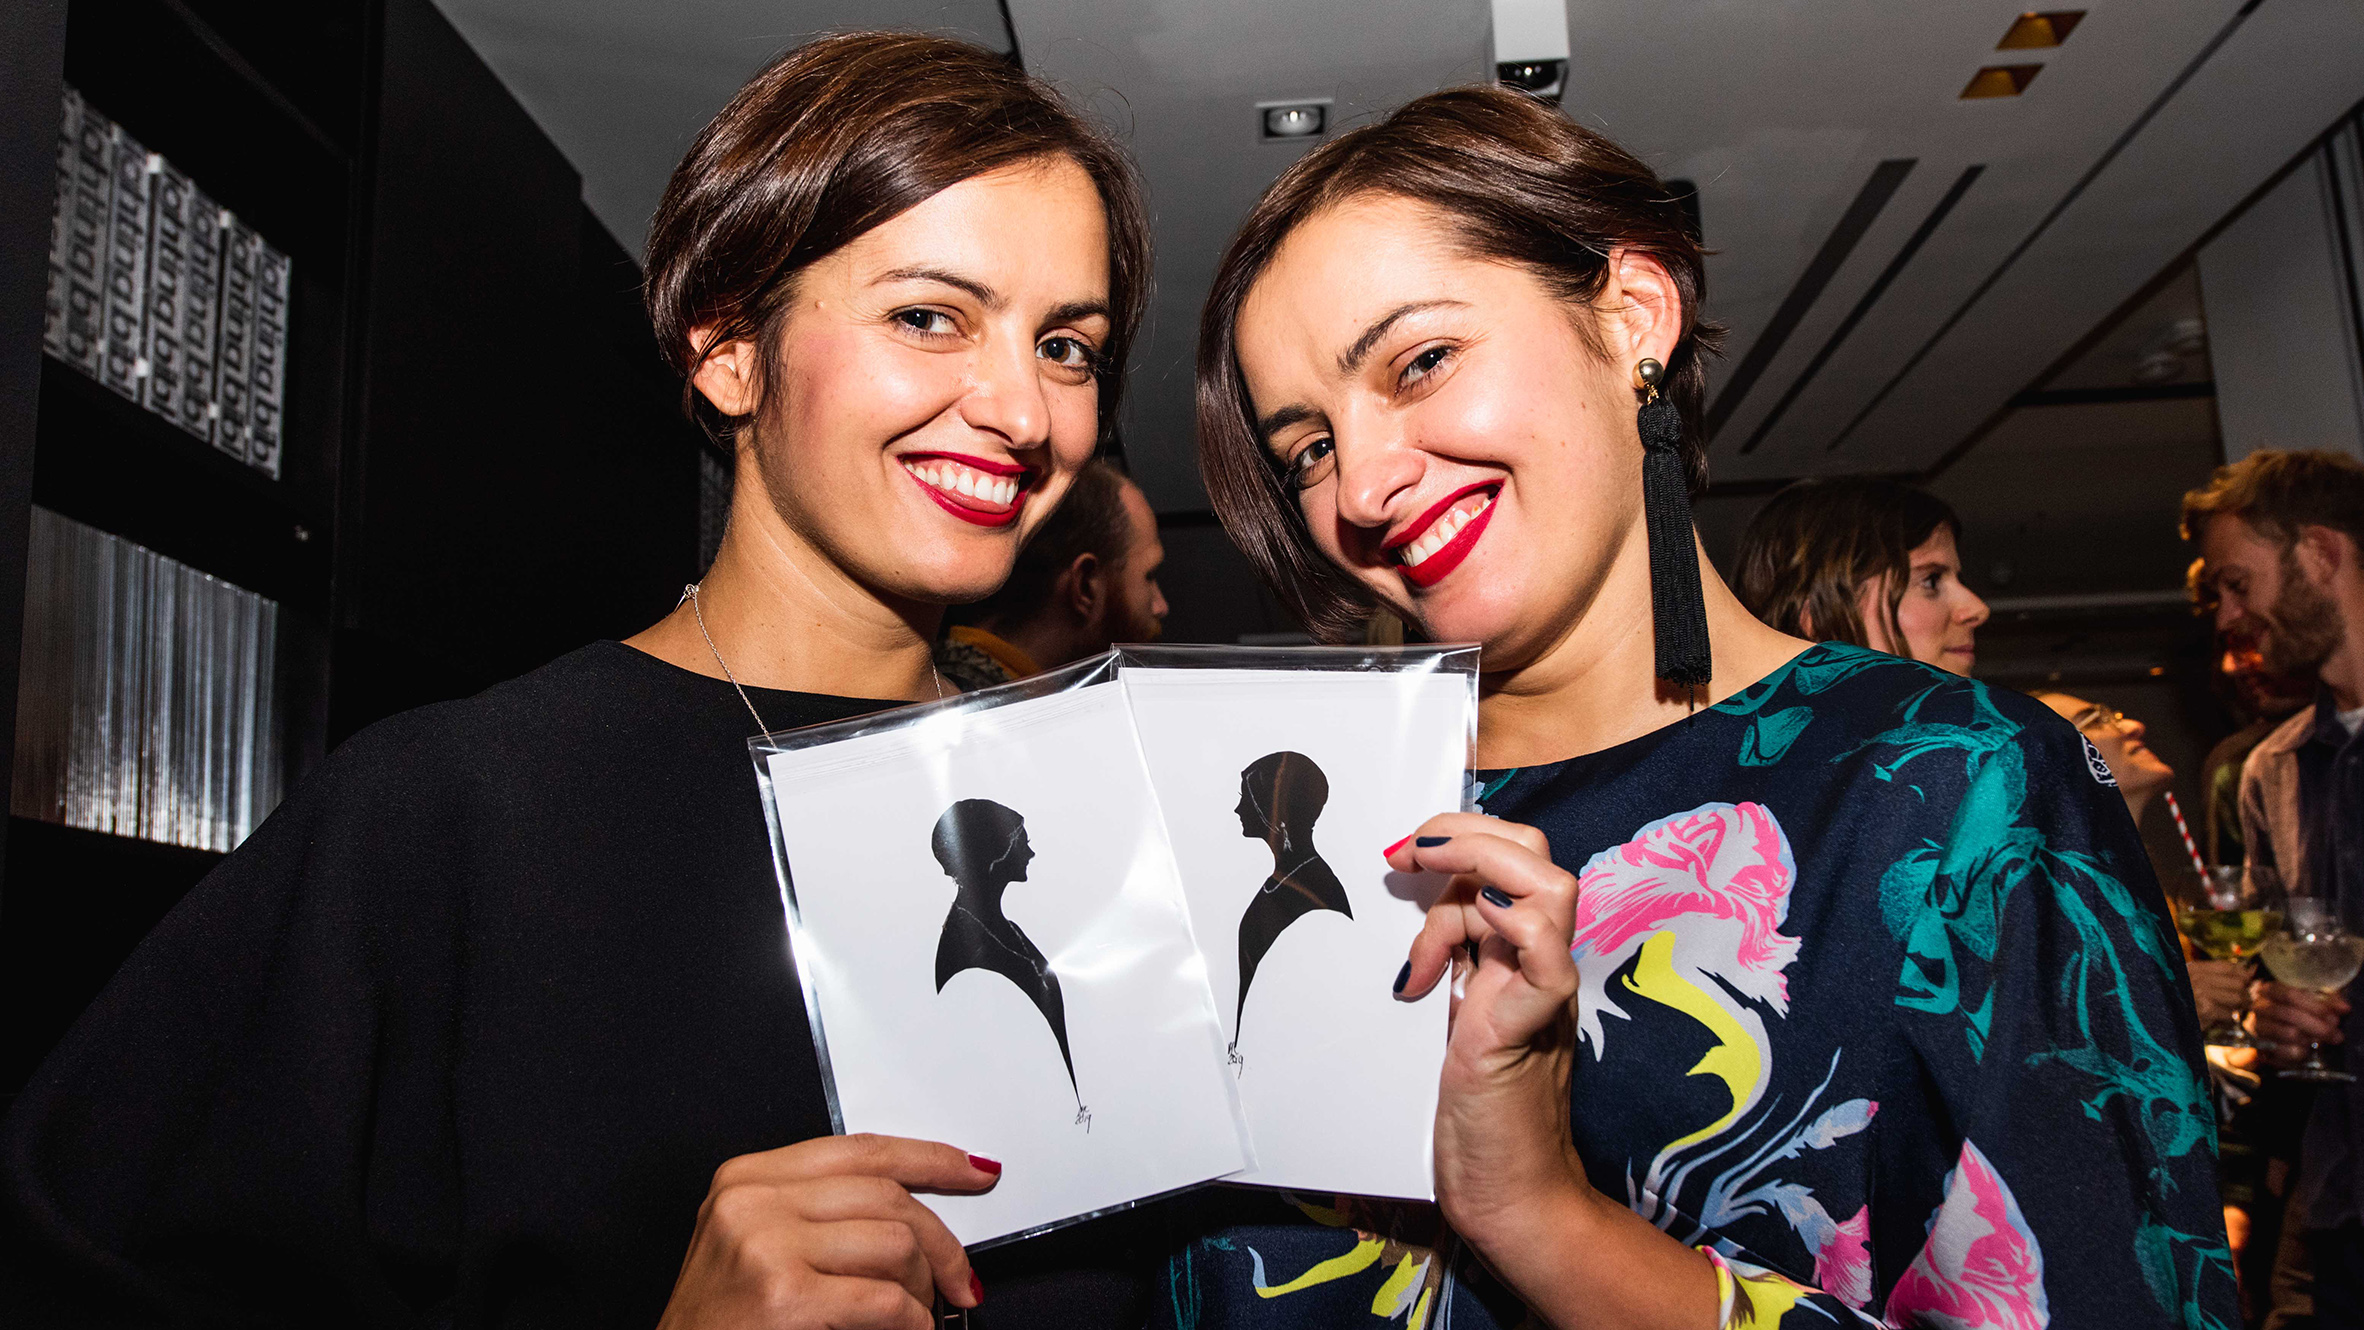 Co-founders of Sundukovy Sisters, Irina and Olga Sundukovy